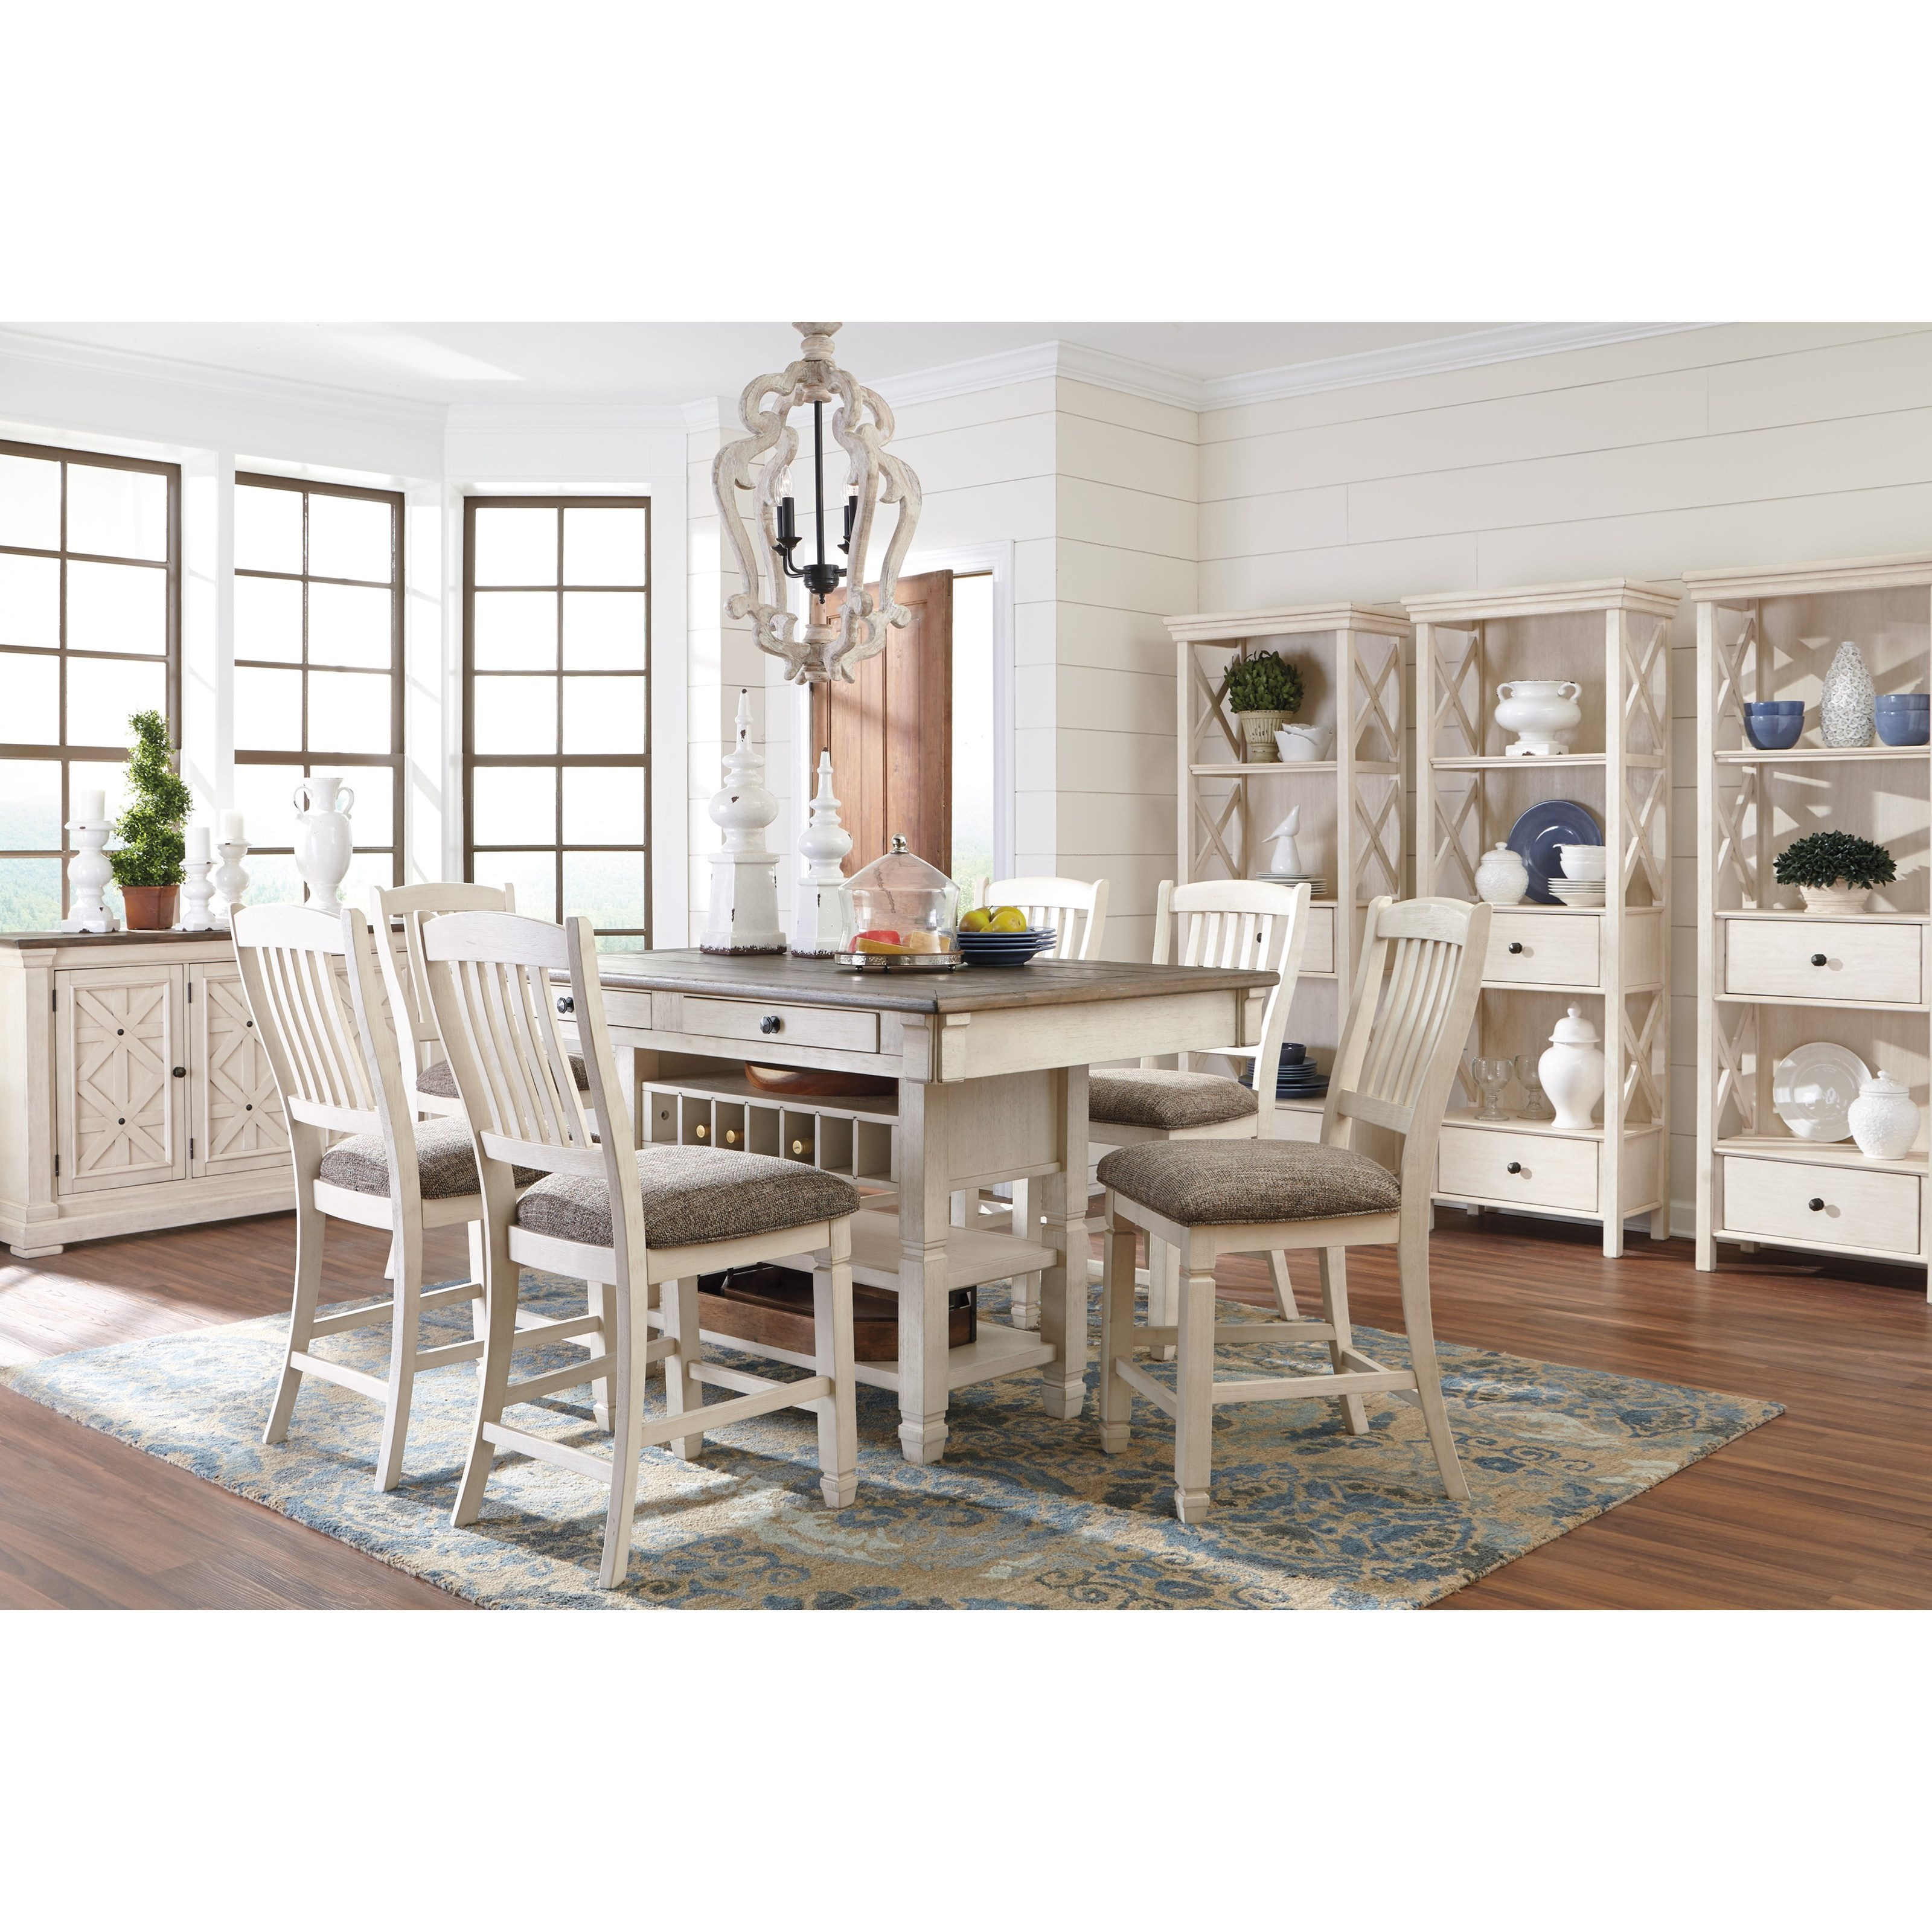 Signature design by ashley bolanburg casual dining room for Casual dining room chairs